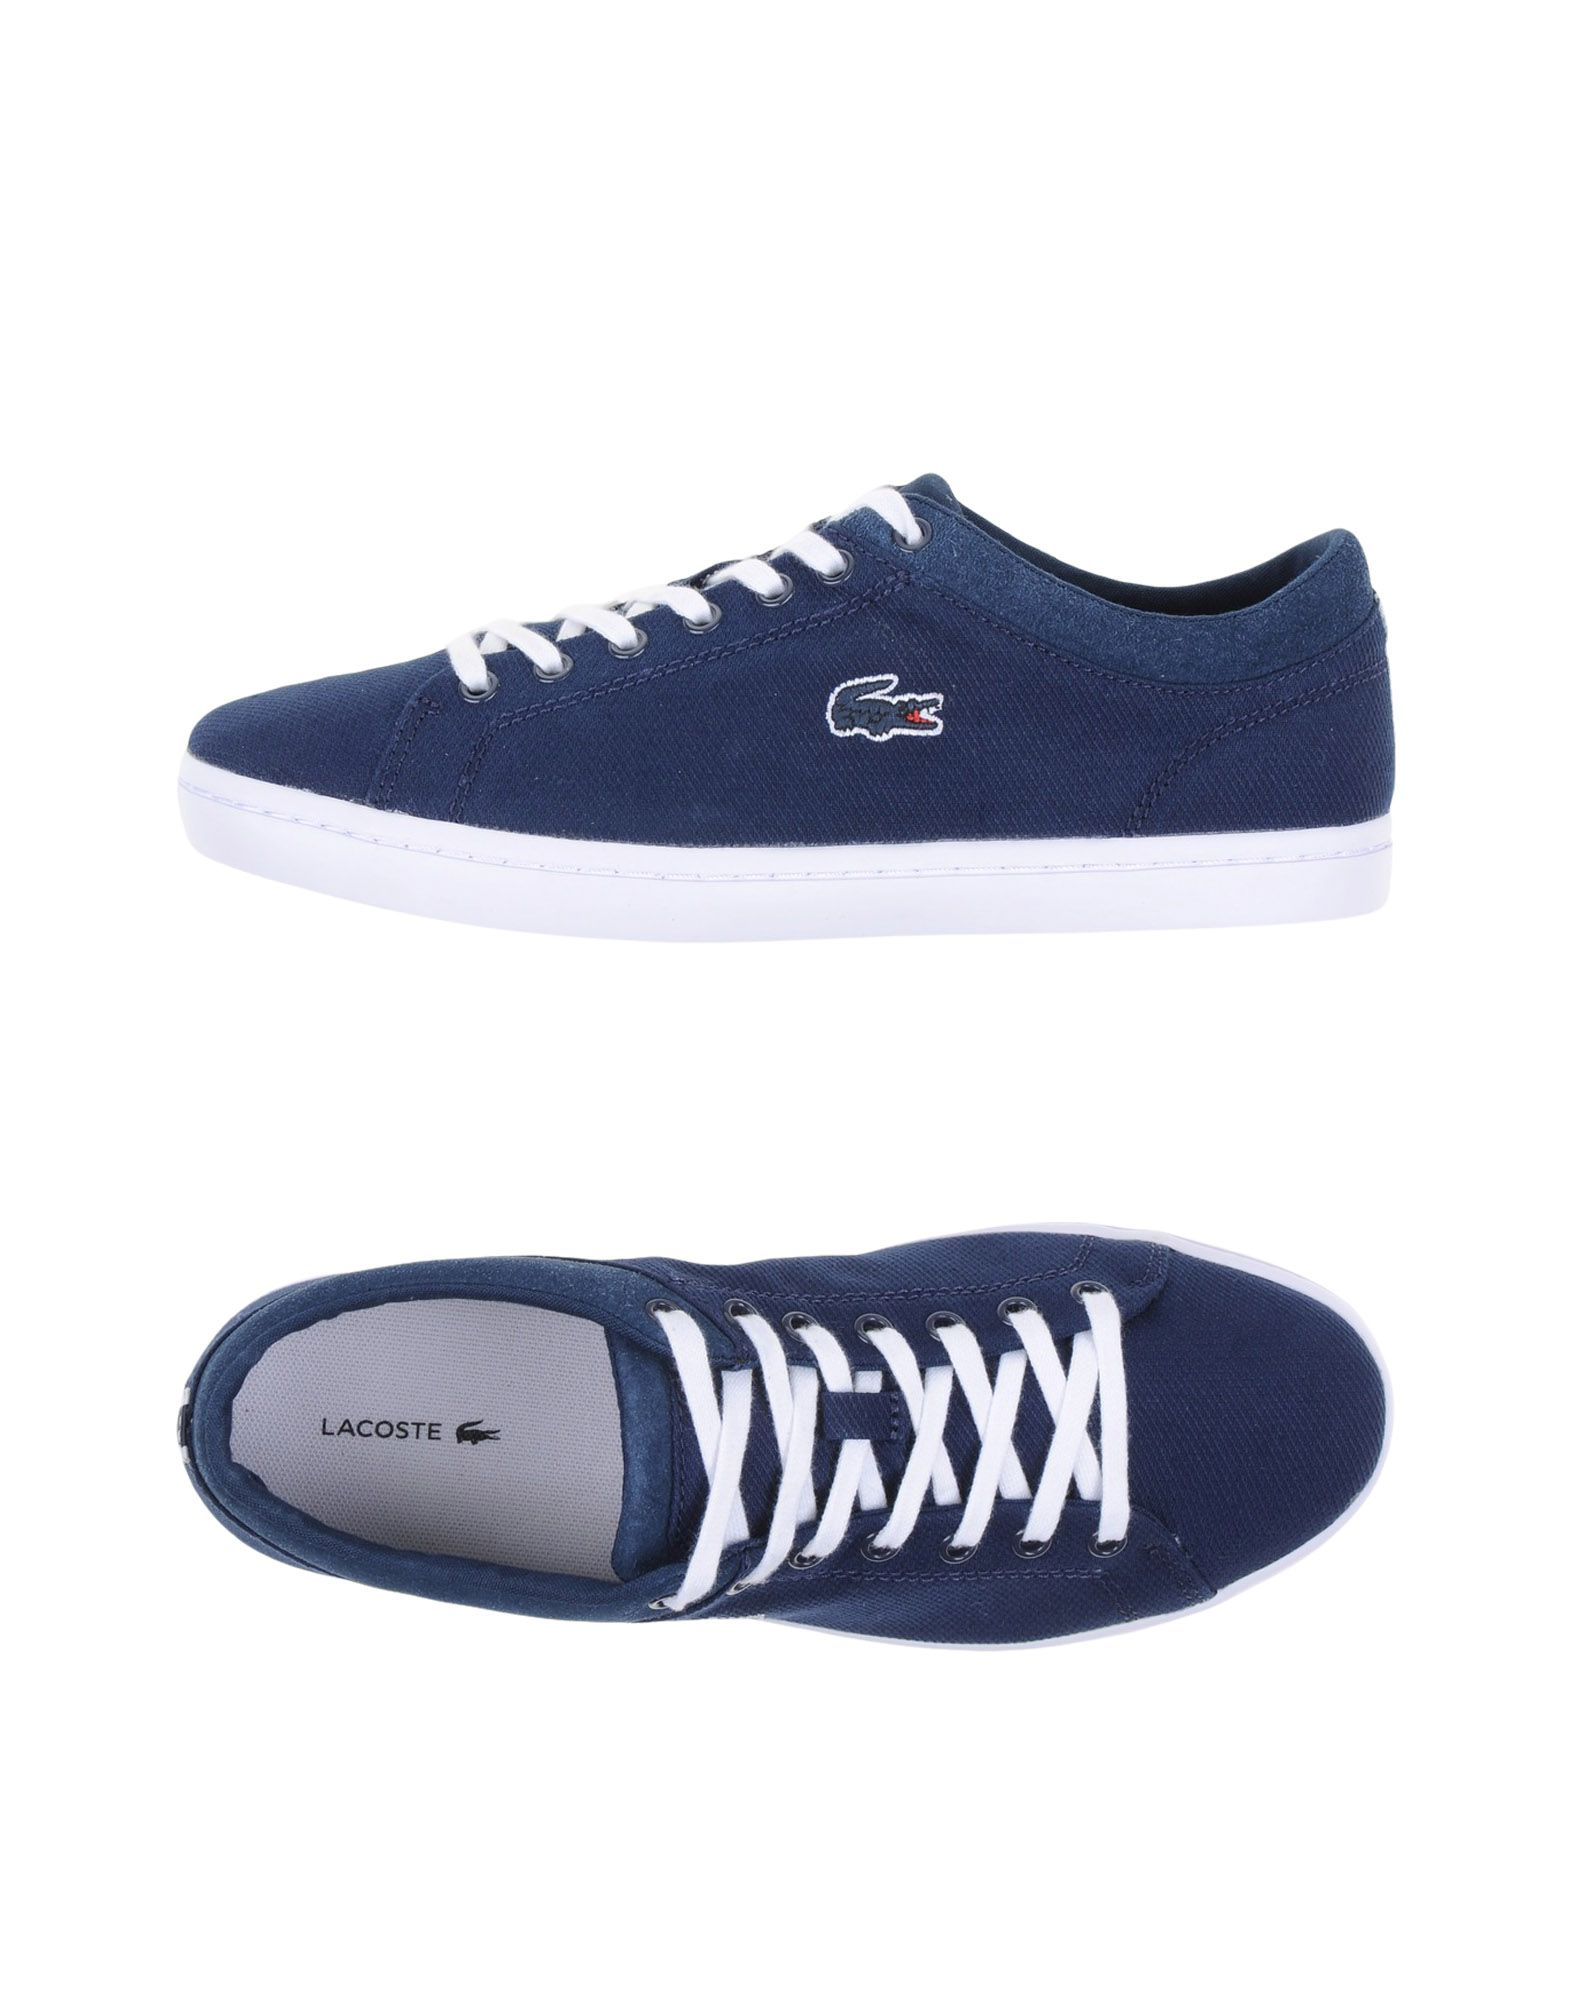 Sneakers Lacoste Straightset 116 2 - Donna Donna Donna - 11009465RO 8dfa29